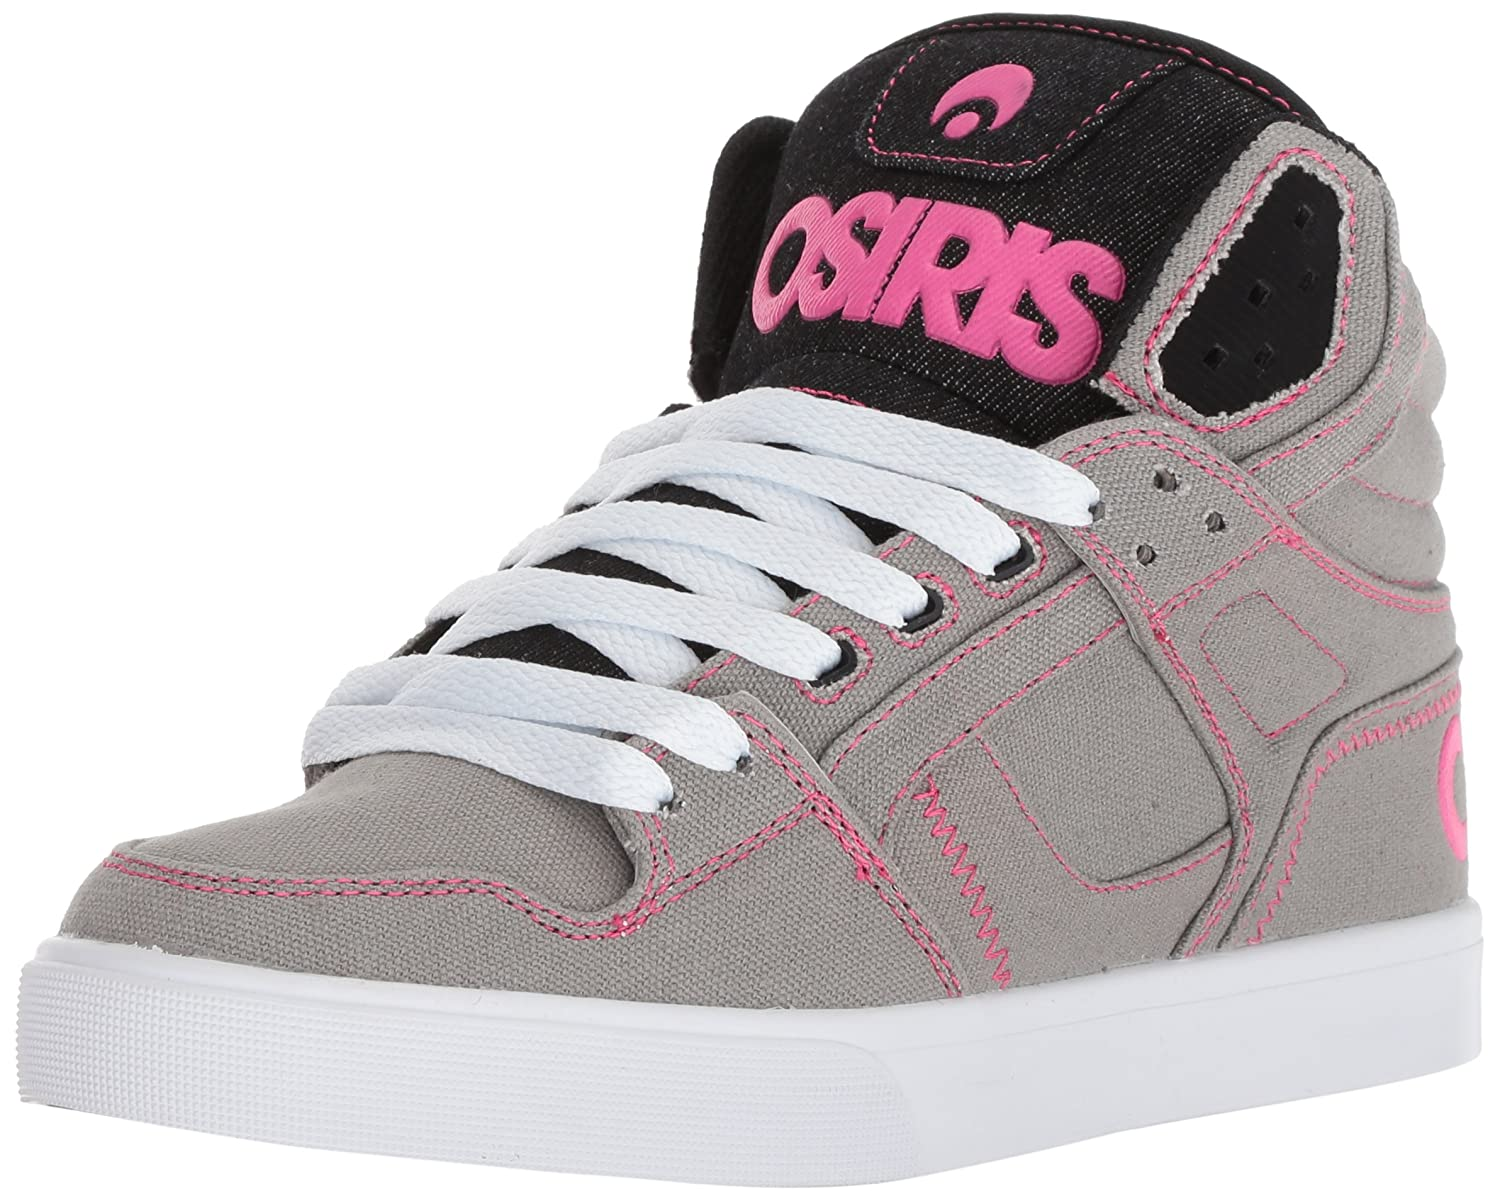 Osiris Women's Clone Skate US|Grey/White/Pink Shoe B0748BVXS5 7.5 B(M) US|Grey/White/Pink Skate bd3c3f